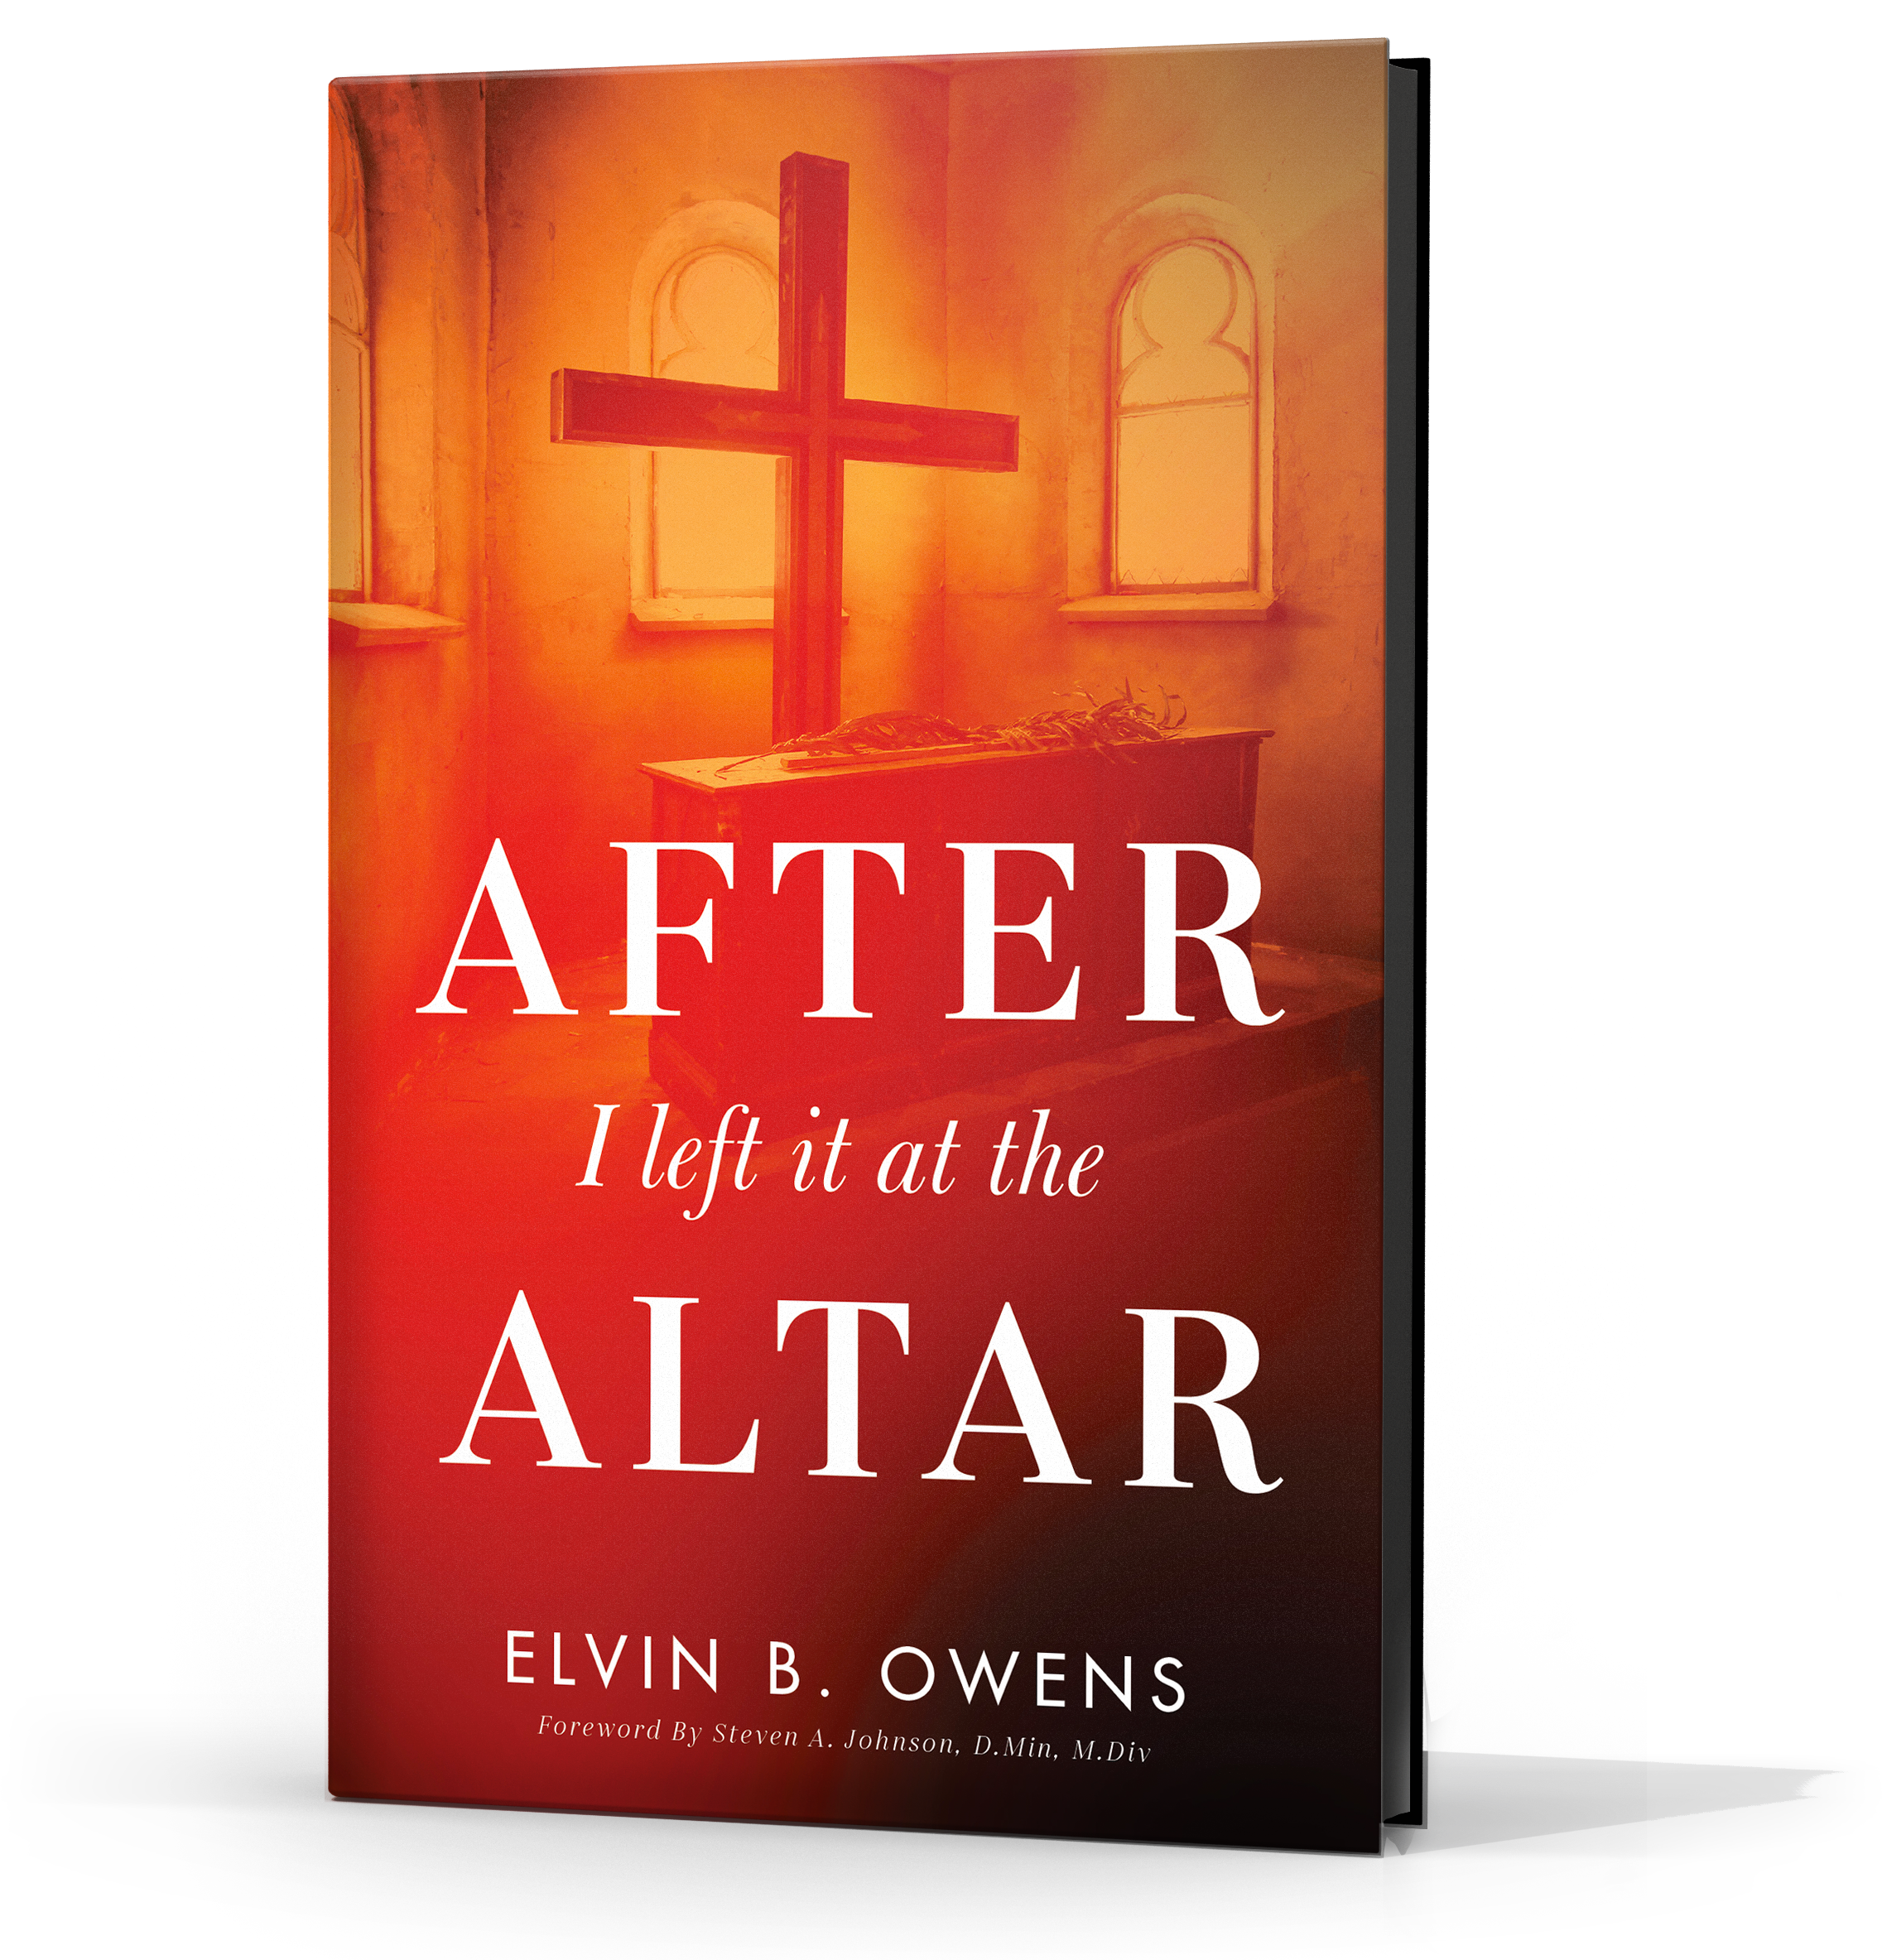 Bestselling Author Releases Inspirational Book to Encourage Believers Along Their Faith Journey